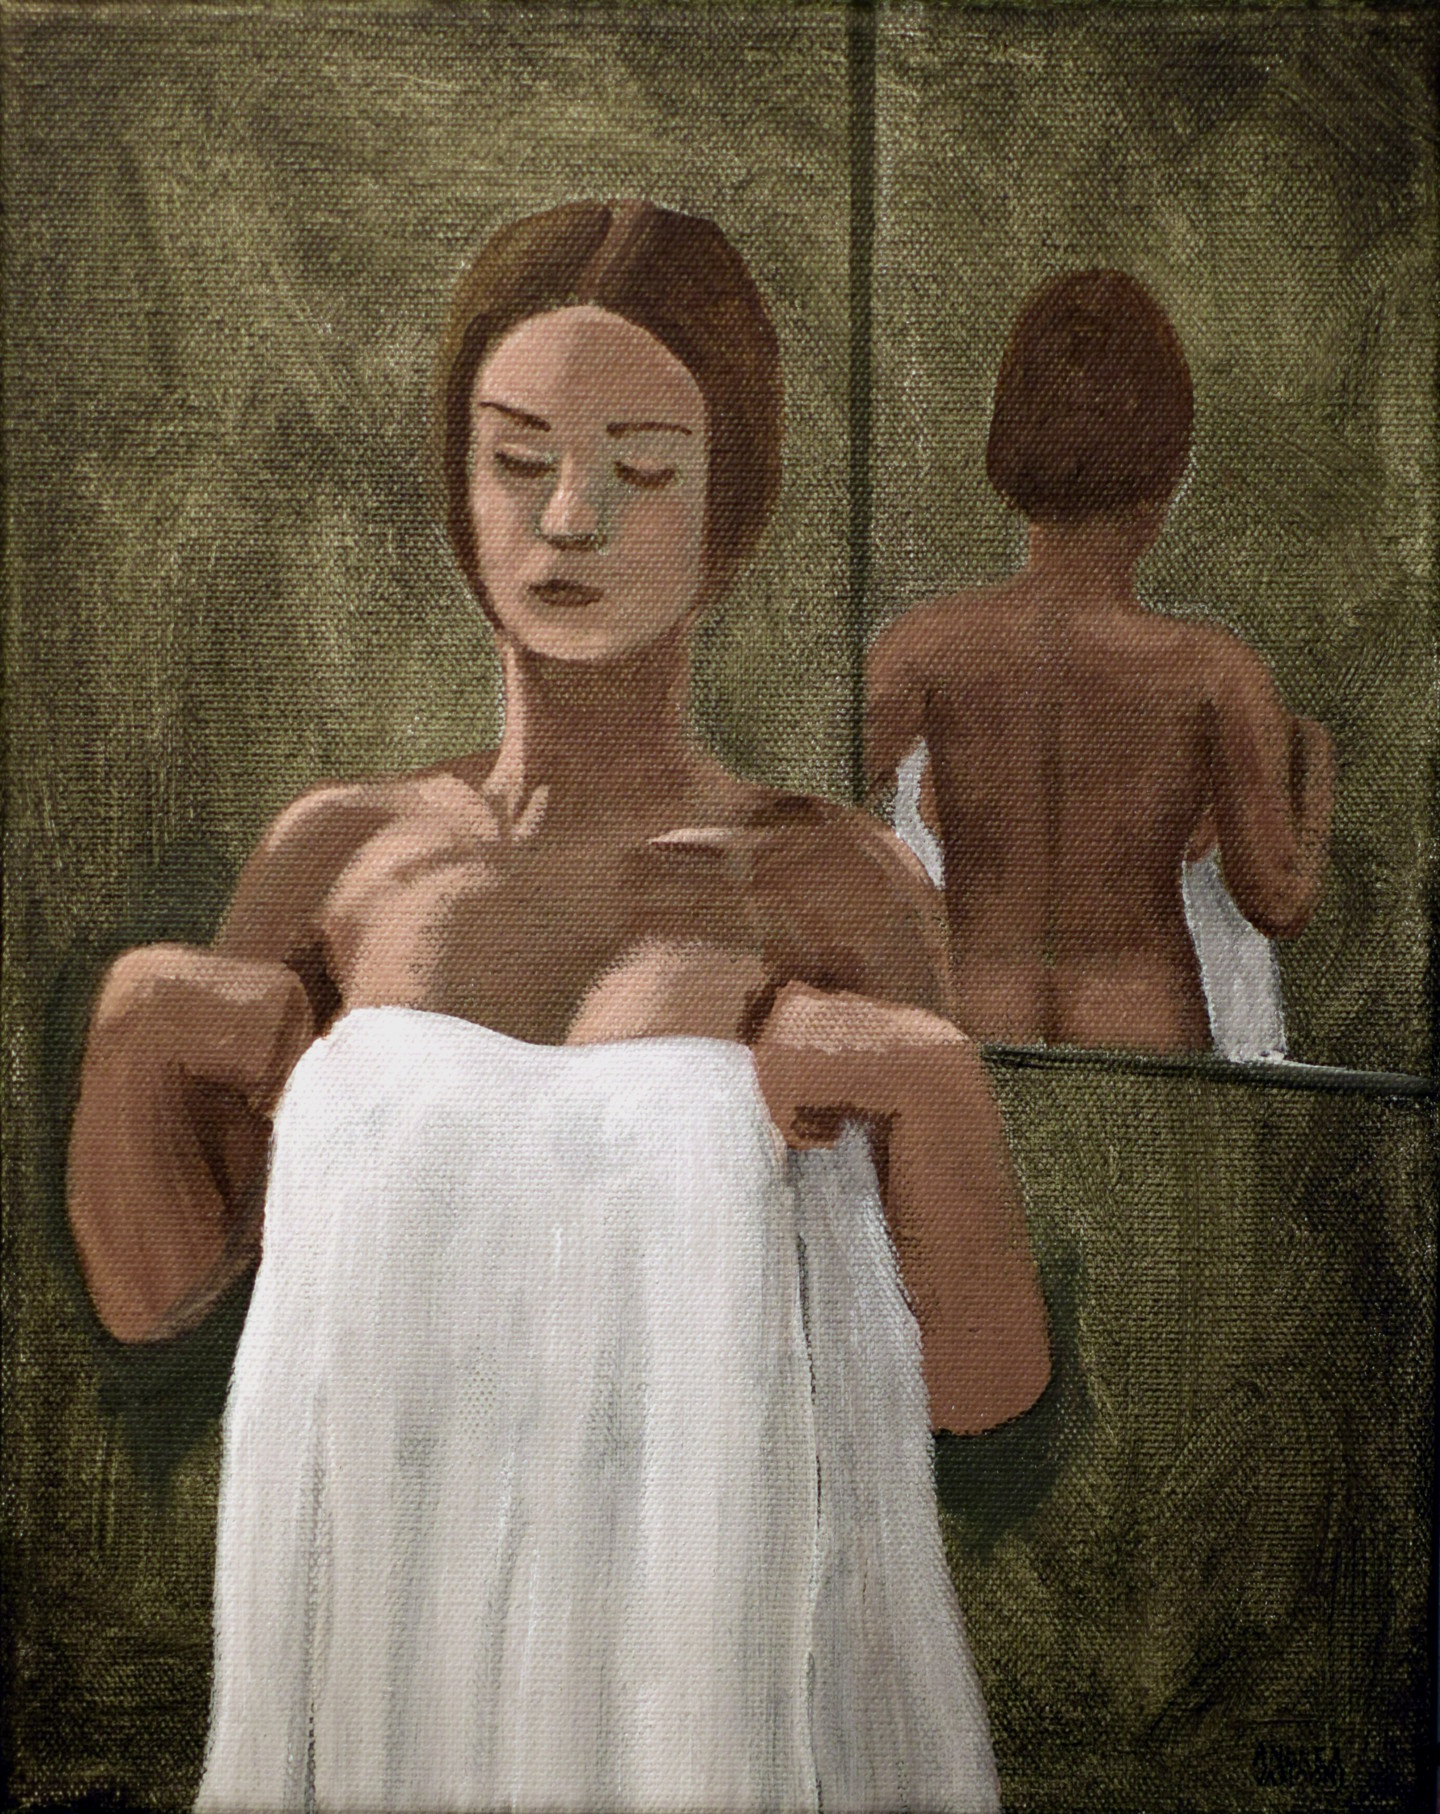 Andrea Vandoni - THE MIRROR